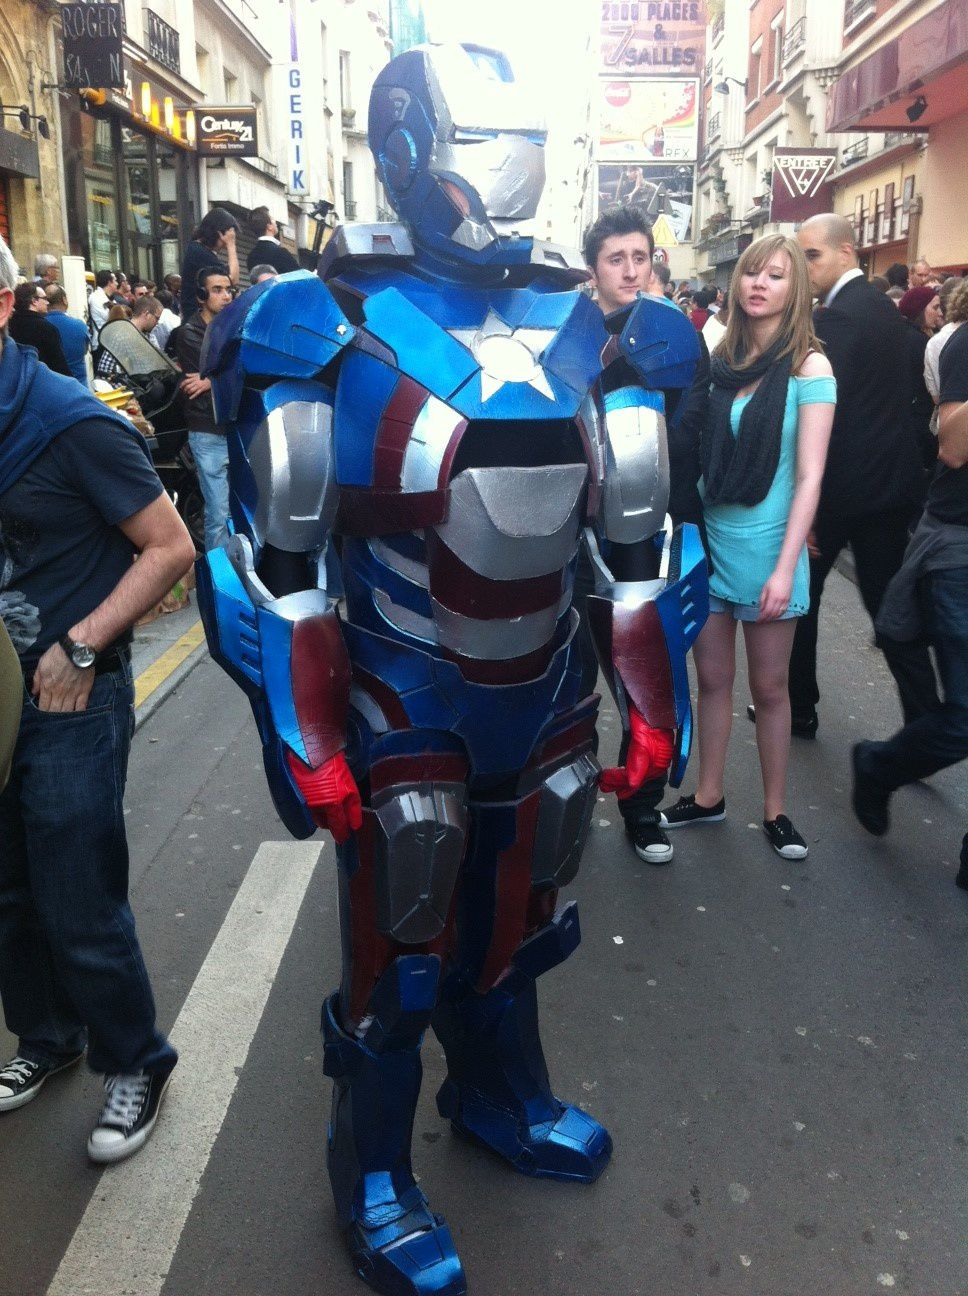 Han Jones (www.facebook.com/LeagueOfReplica) - Cosplay Iron Patriot